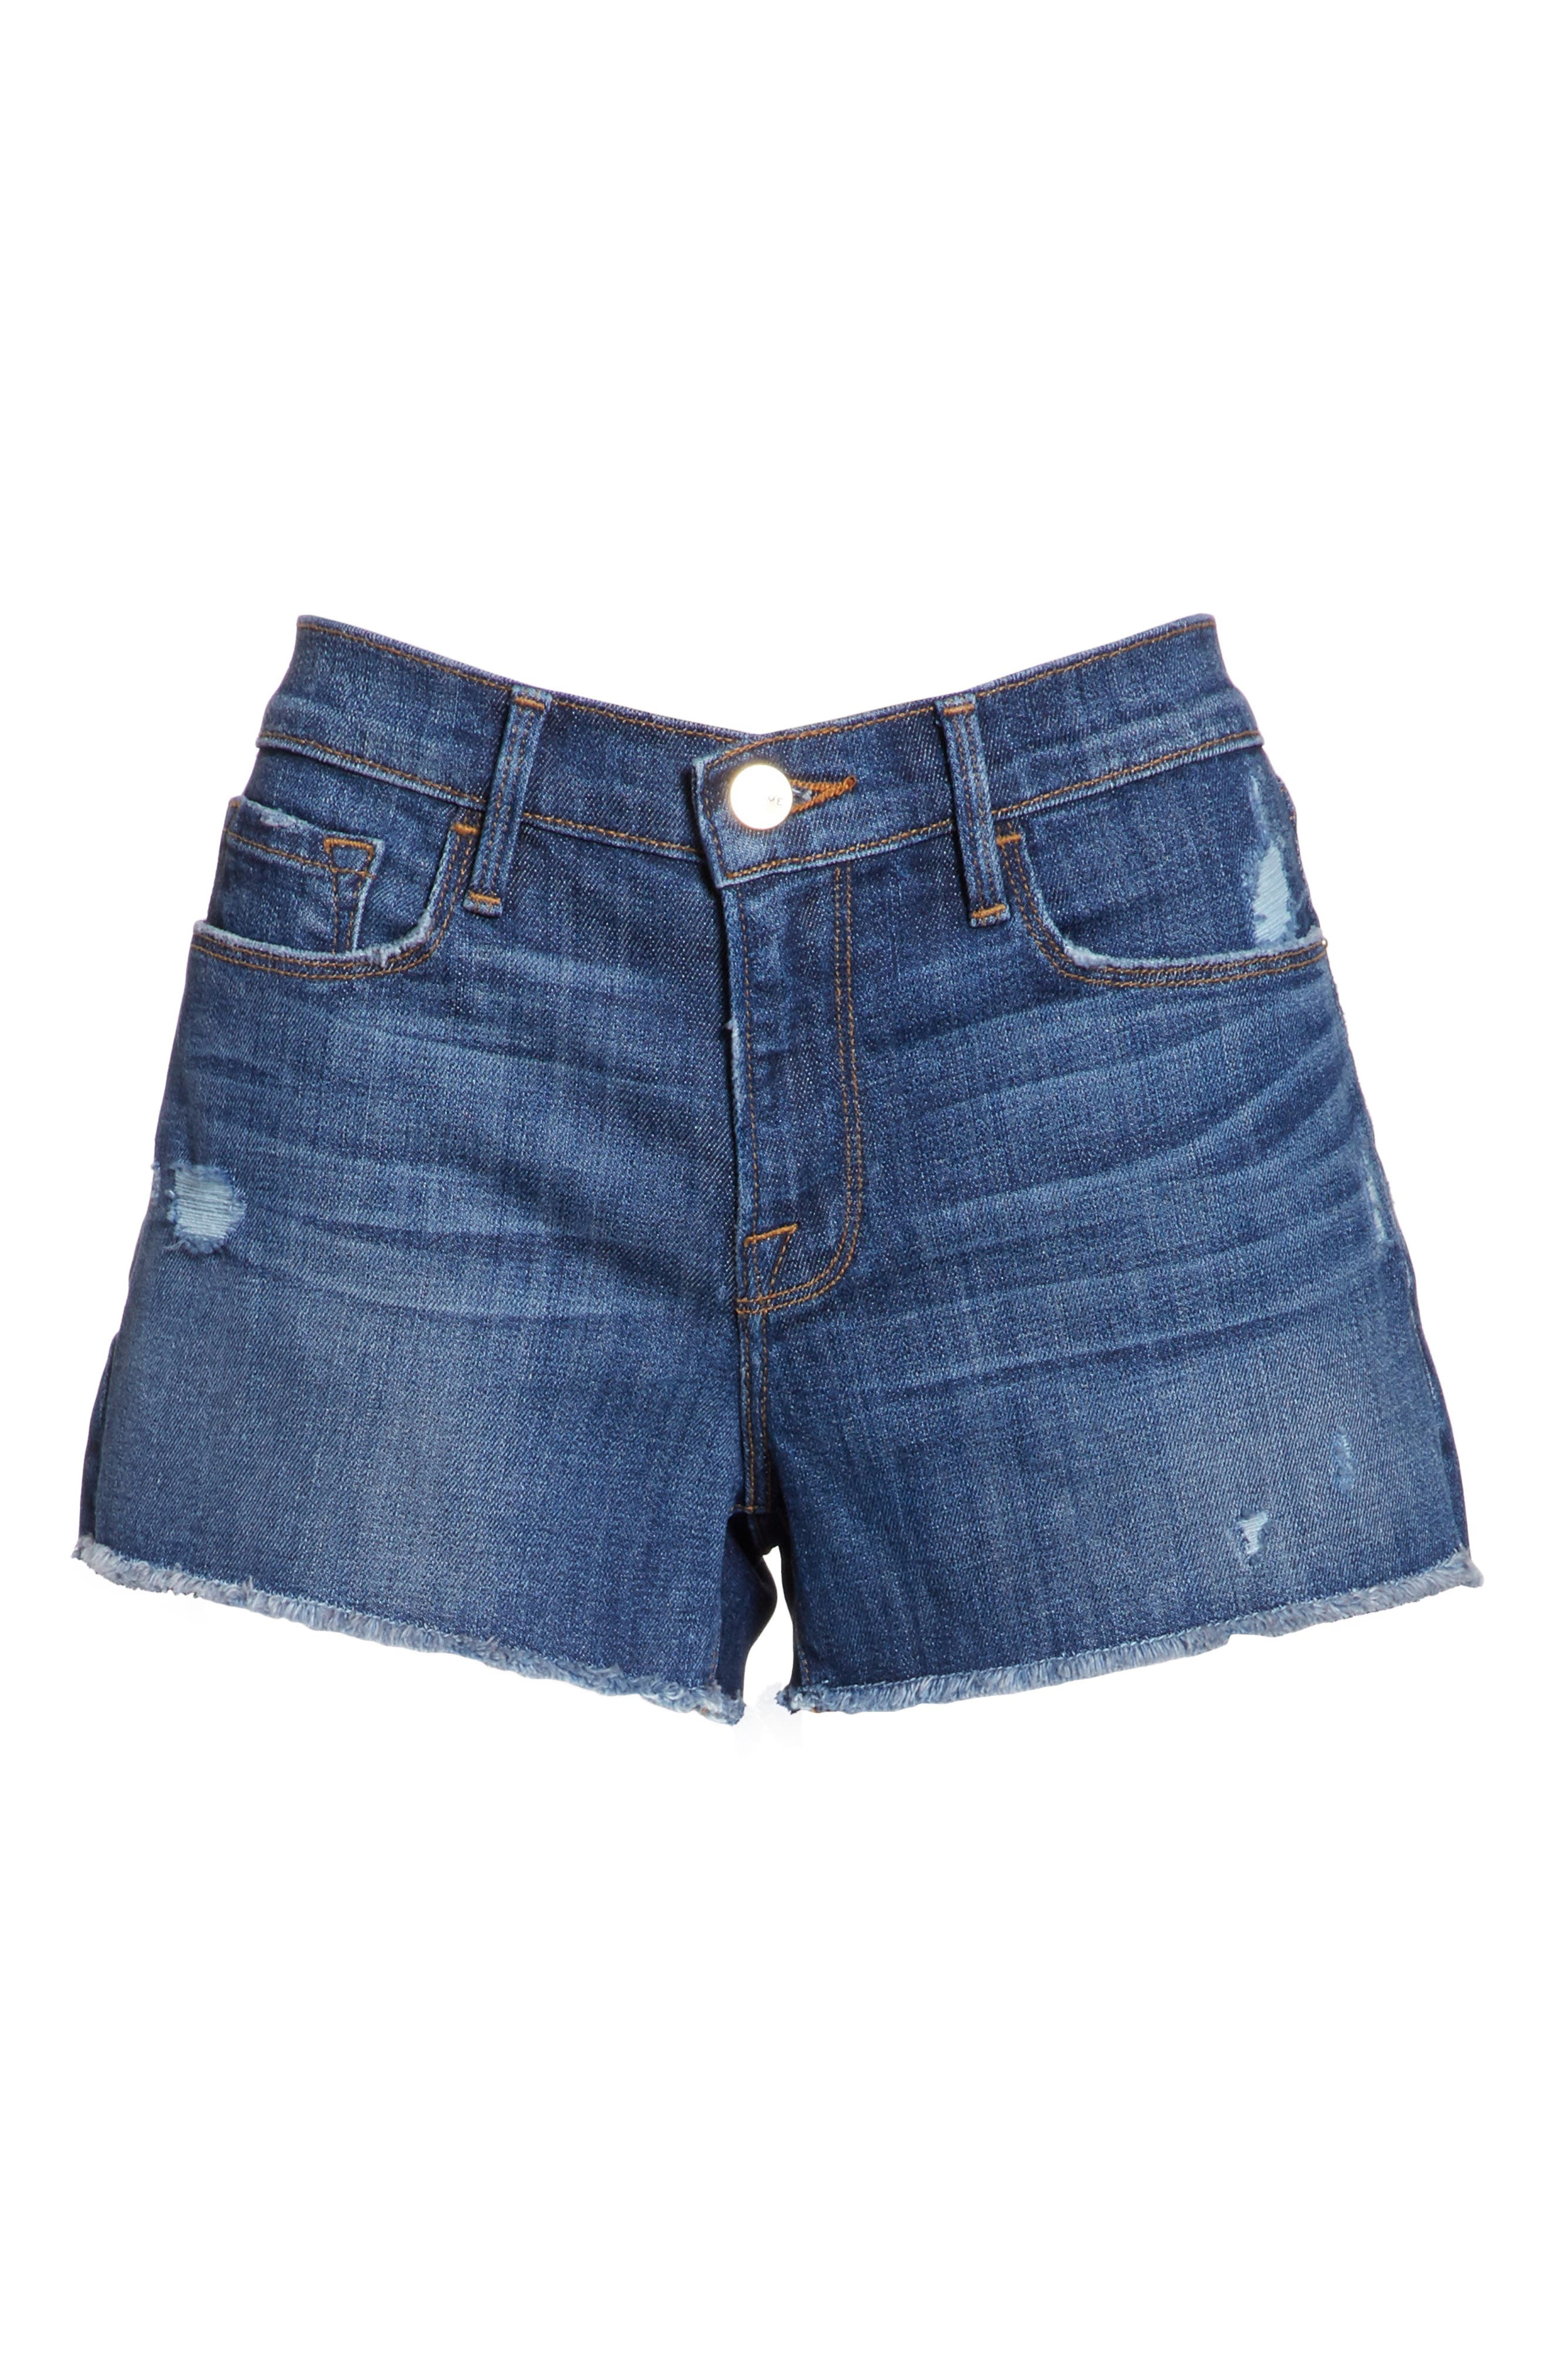 Le Cutoff Denim Shorts,                             Alternate thumbnail 7, color,                             Eckford